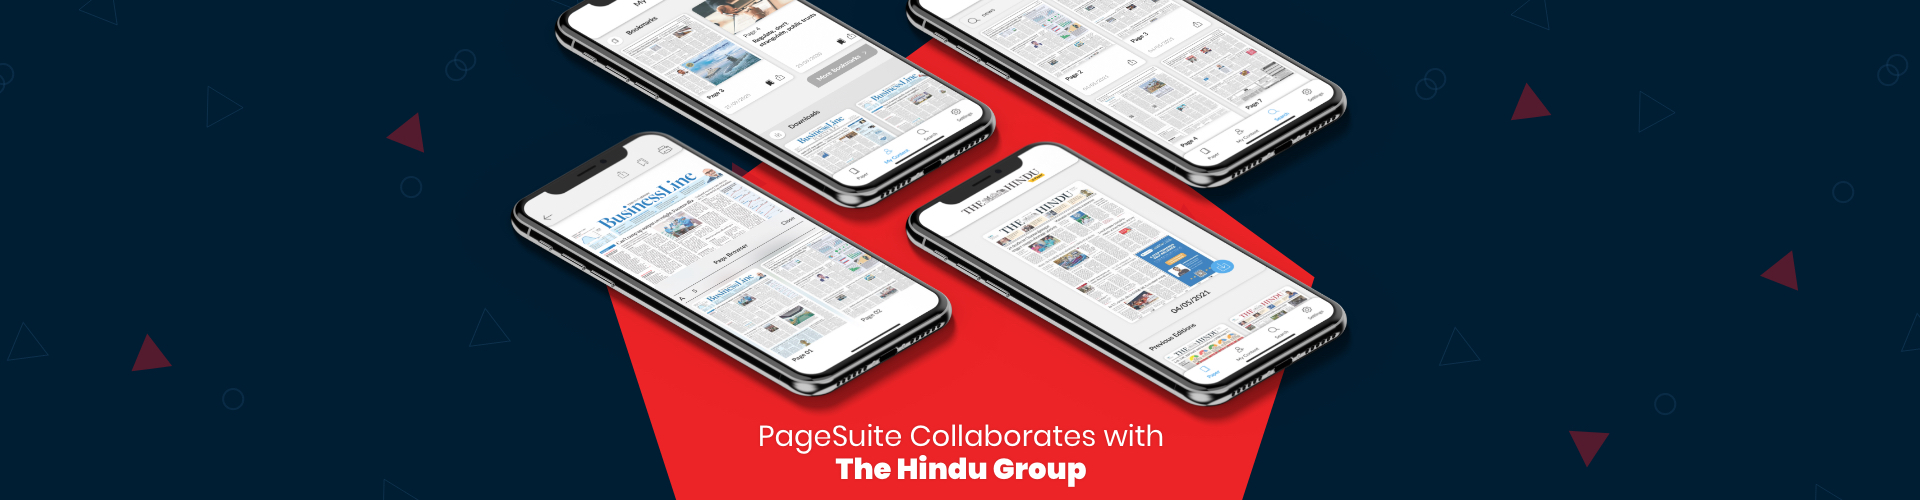 PRESS RELEASE: The Hindu Group Collaborates with PageSuite to Launch New ePaper Apps for Digital Subscribers